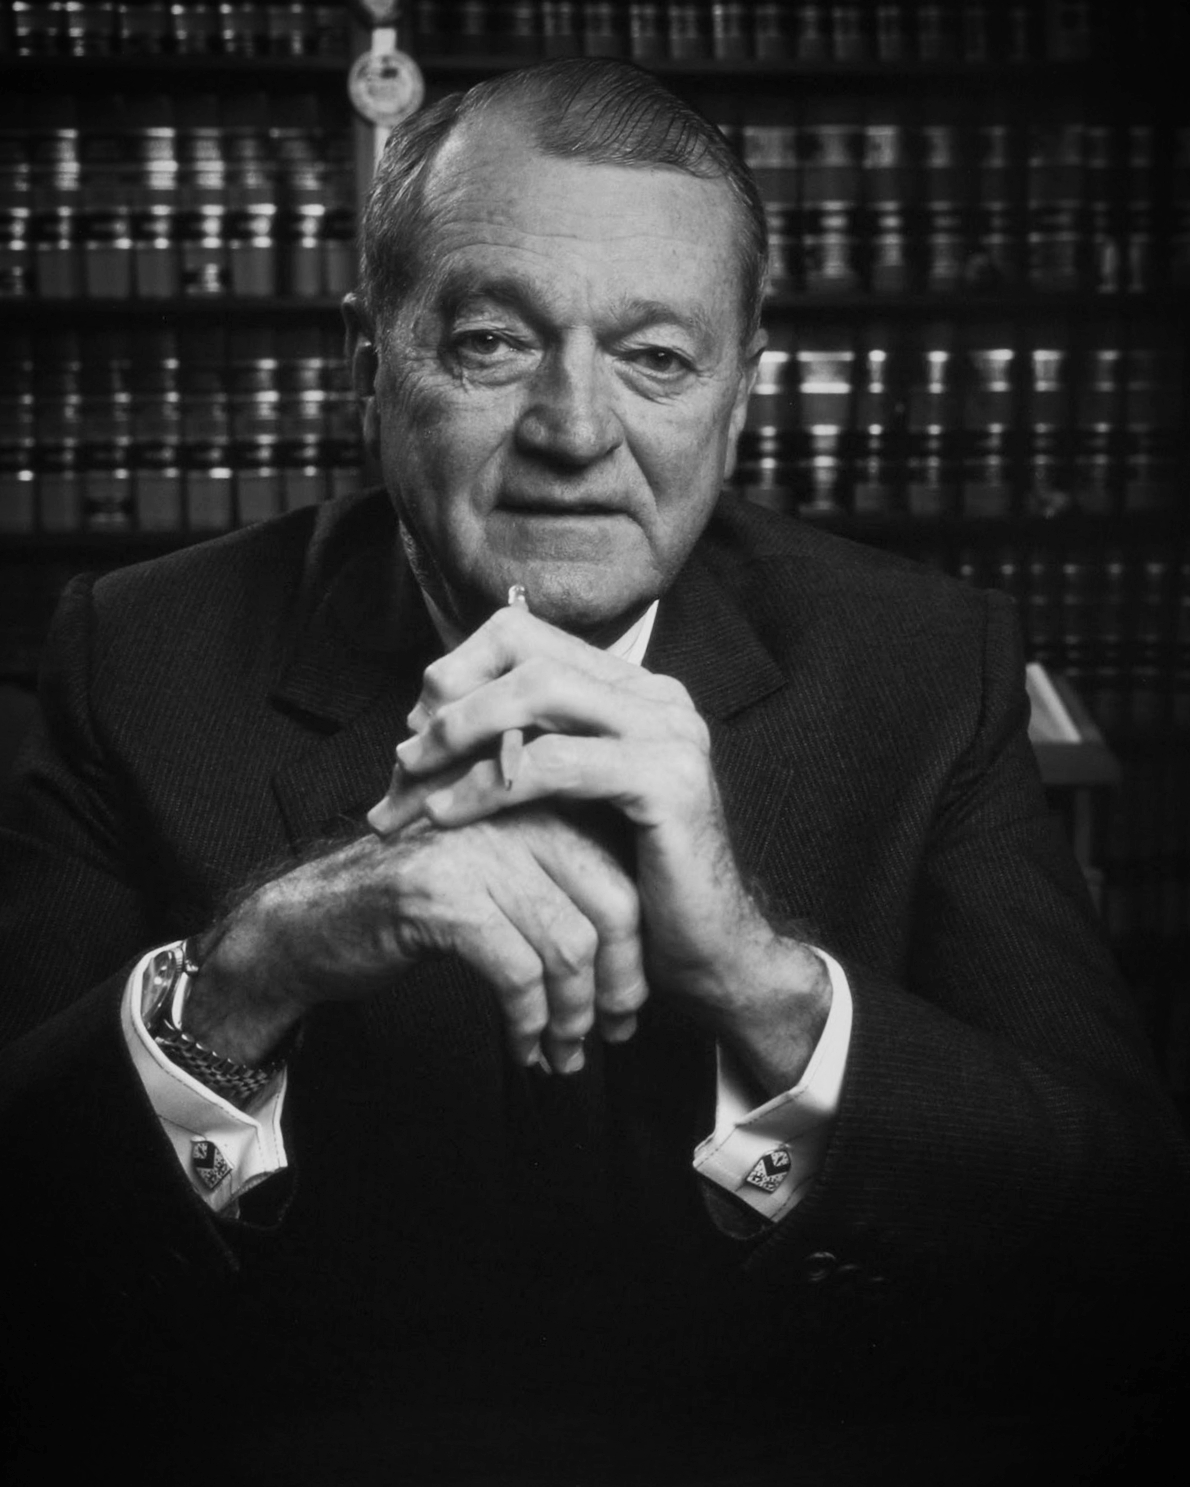 Charles Alan Wright , former professor at The University of Texas School of Law, co-author of the leading treatise  Federal Practice and Procedure , and former president of the American Law Institute